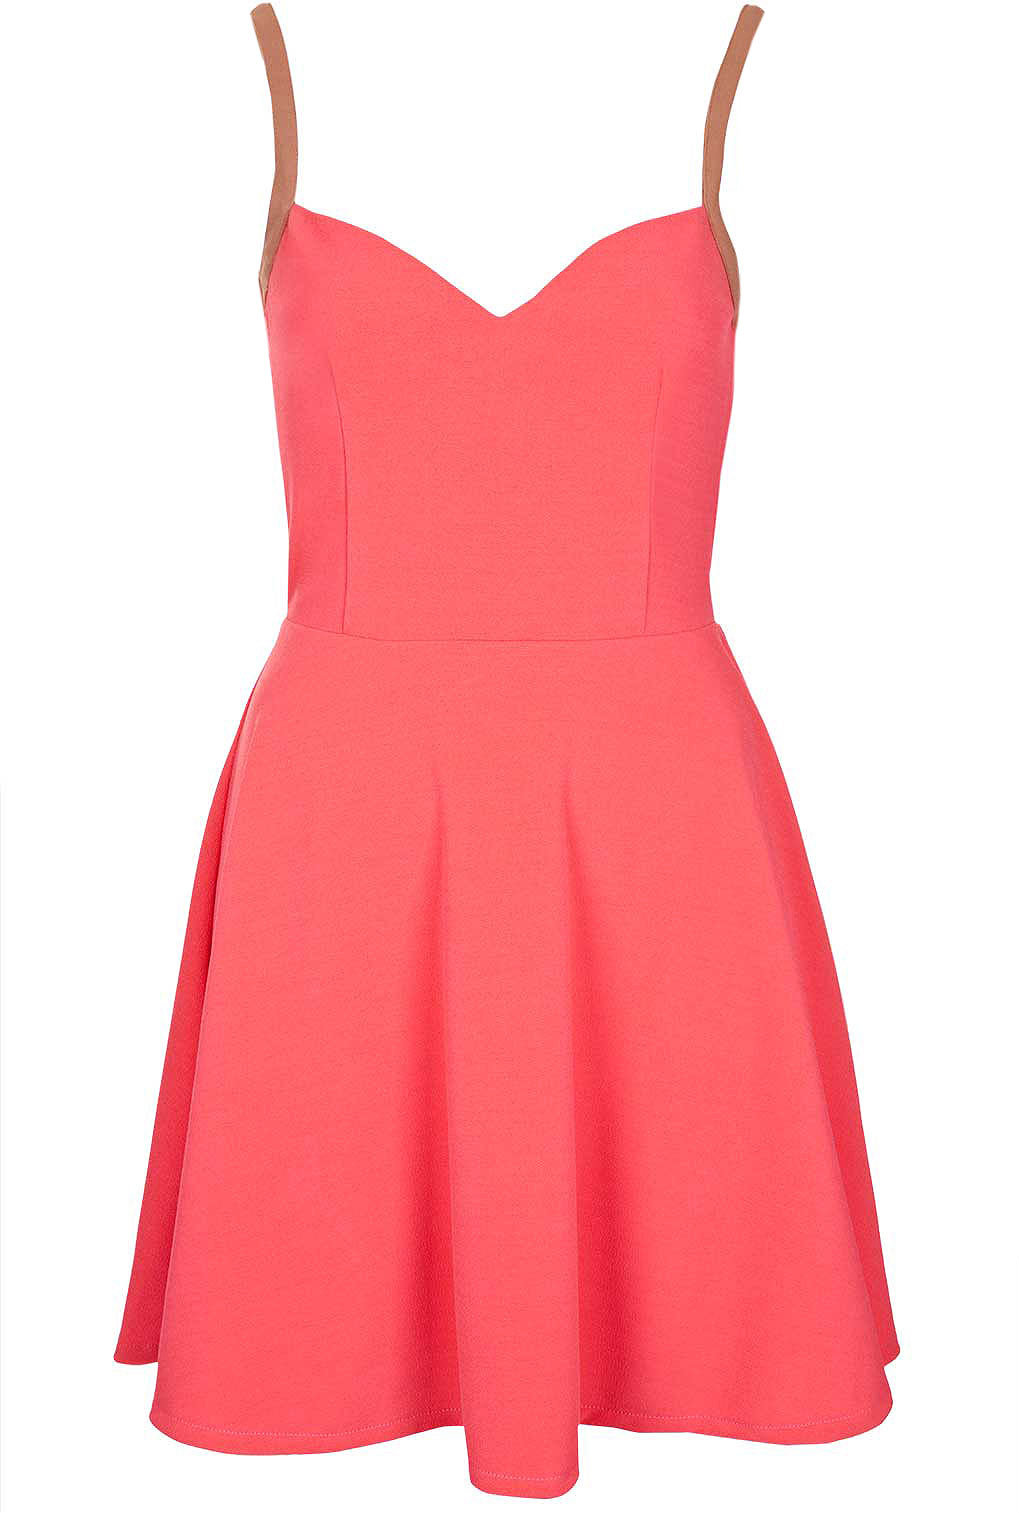 #Topshop                  #love                     #**Sweetheart #Skater #Dress #Love #Topshop         **Sweetheart Skater Dress by Oh My Love - Topshop                             http://www.seapai.com/product.aspx?PID=584981